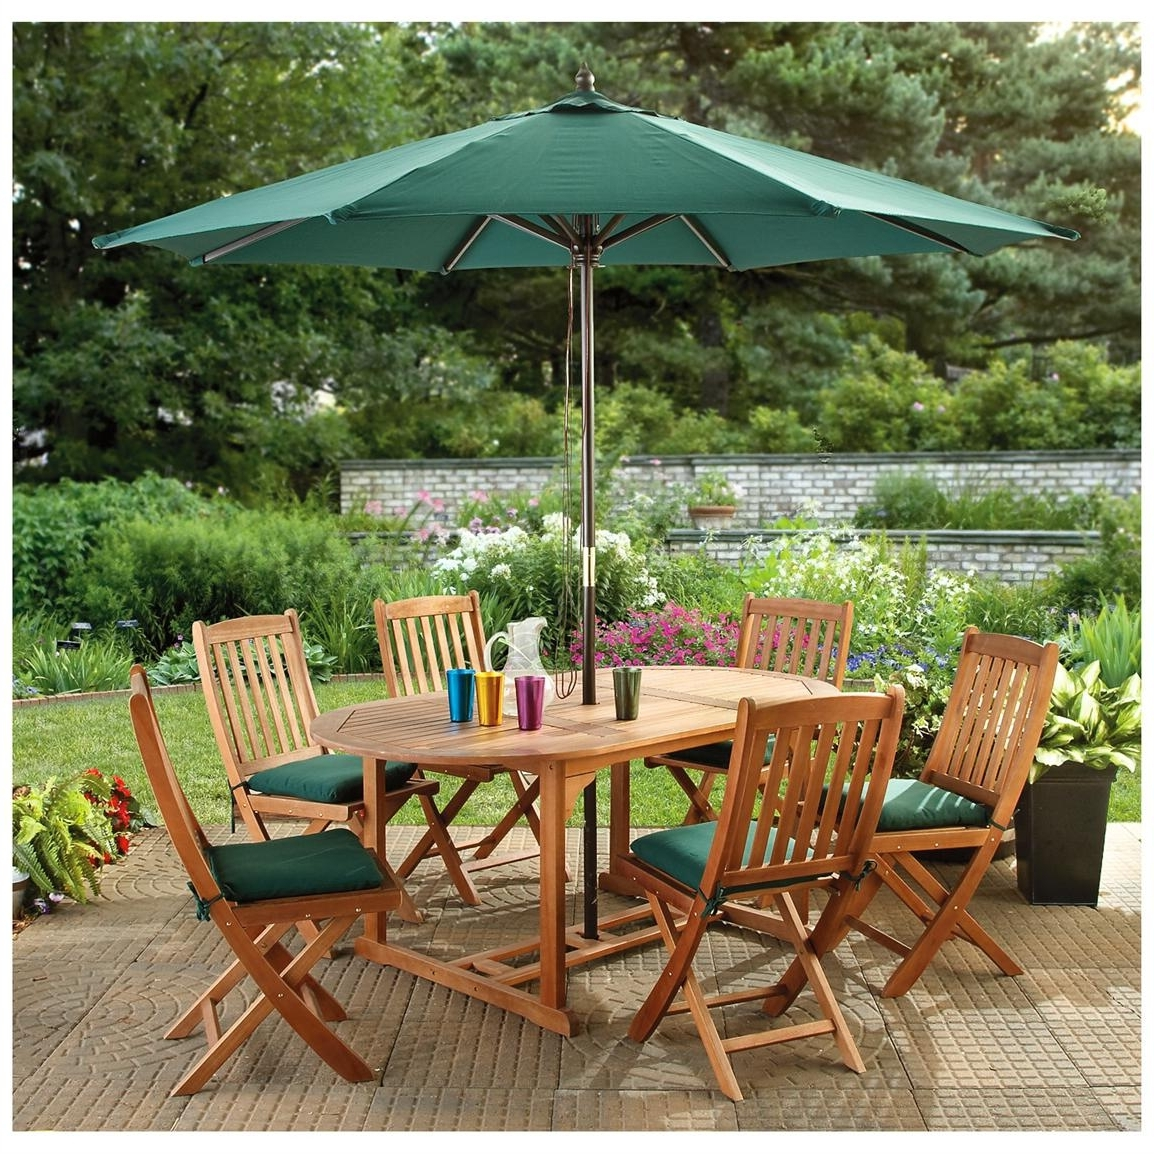 Most Popular Patio: Amazing Small Patio Table With Umbrella Outdoor Furniture Regarding Small Patio Umbrellas (View 6 of 20)